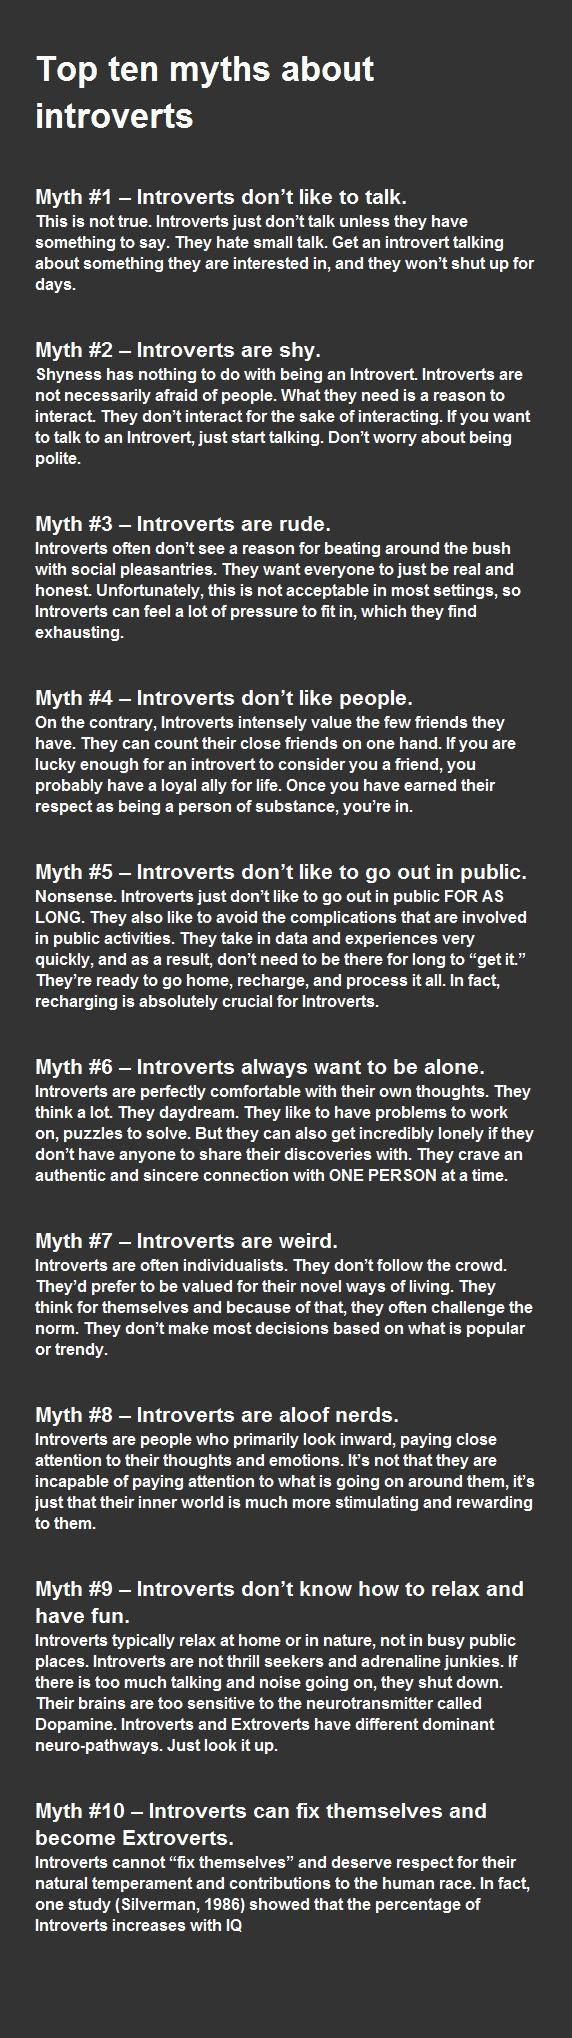 You know, I didn't consider myself an introvert because I thought those things were true about one, but I perfectly fit the descriptions underneath.